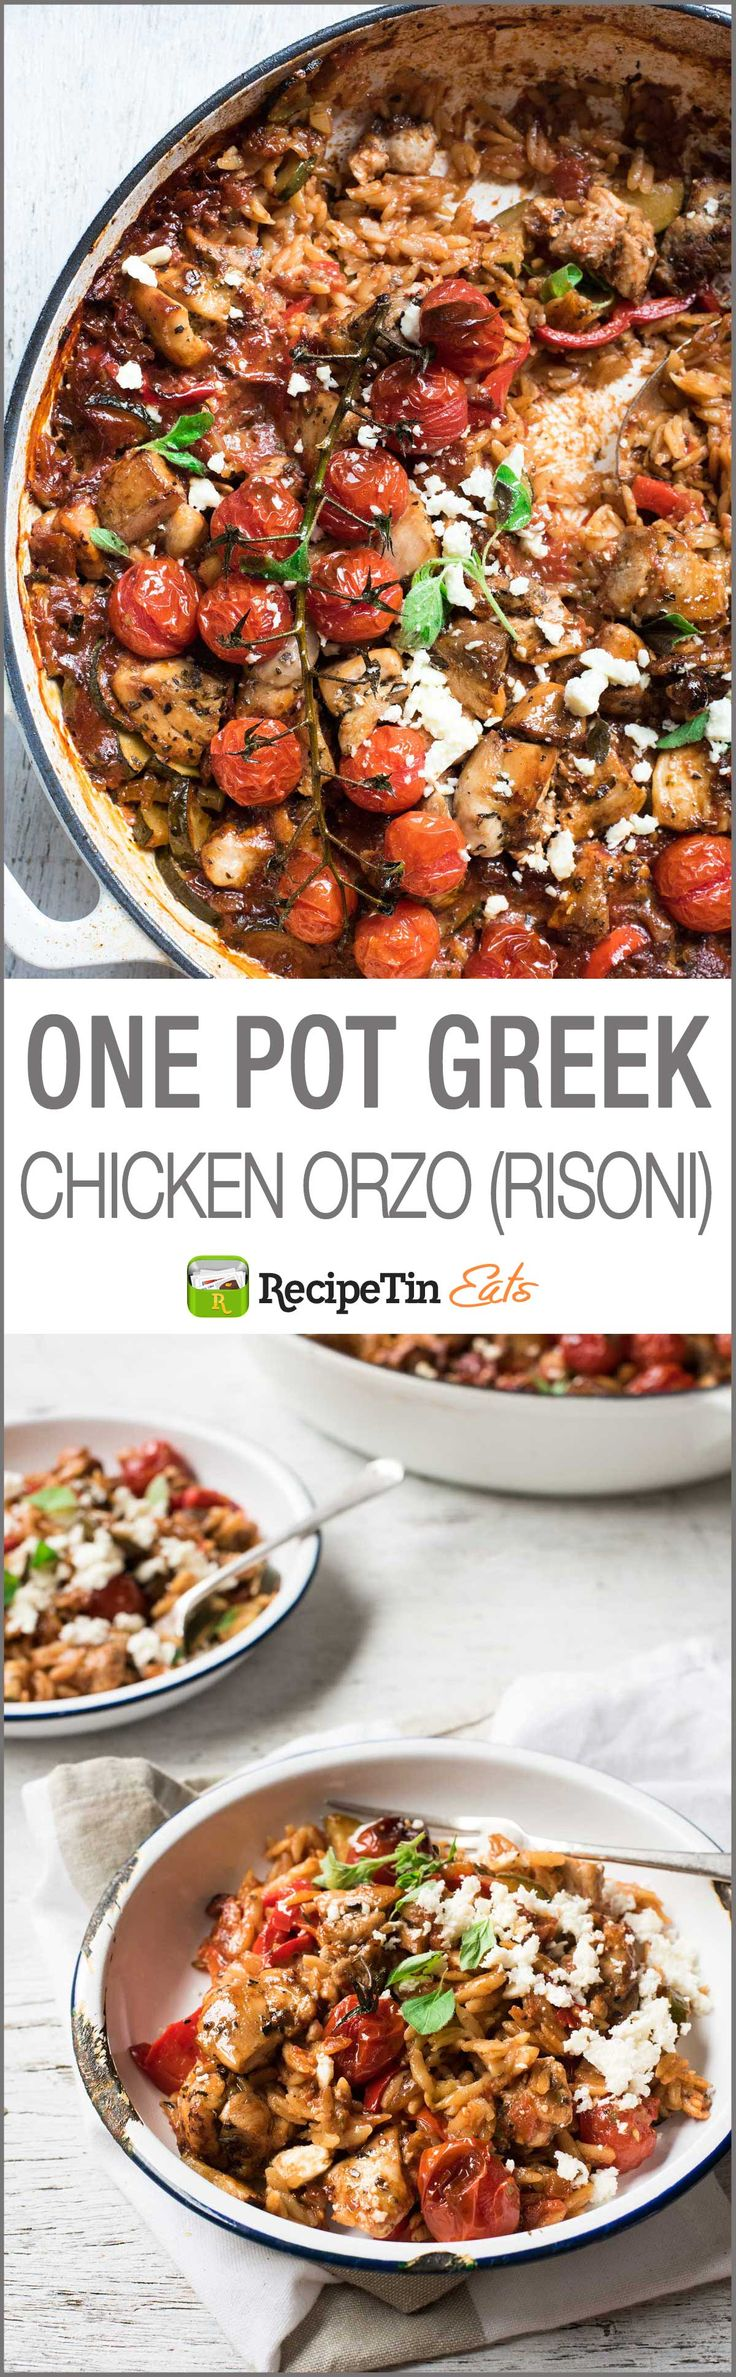 One Pot Greek Chicken Orzo (Risoni) - Al made in one pot, a saucy tomato sauce loaded with Greek flavors!